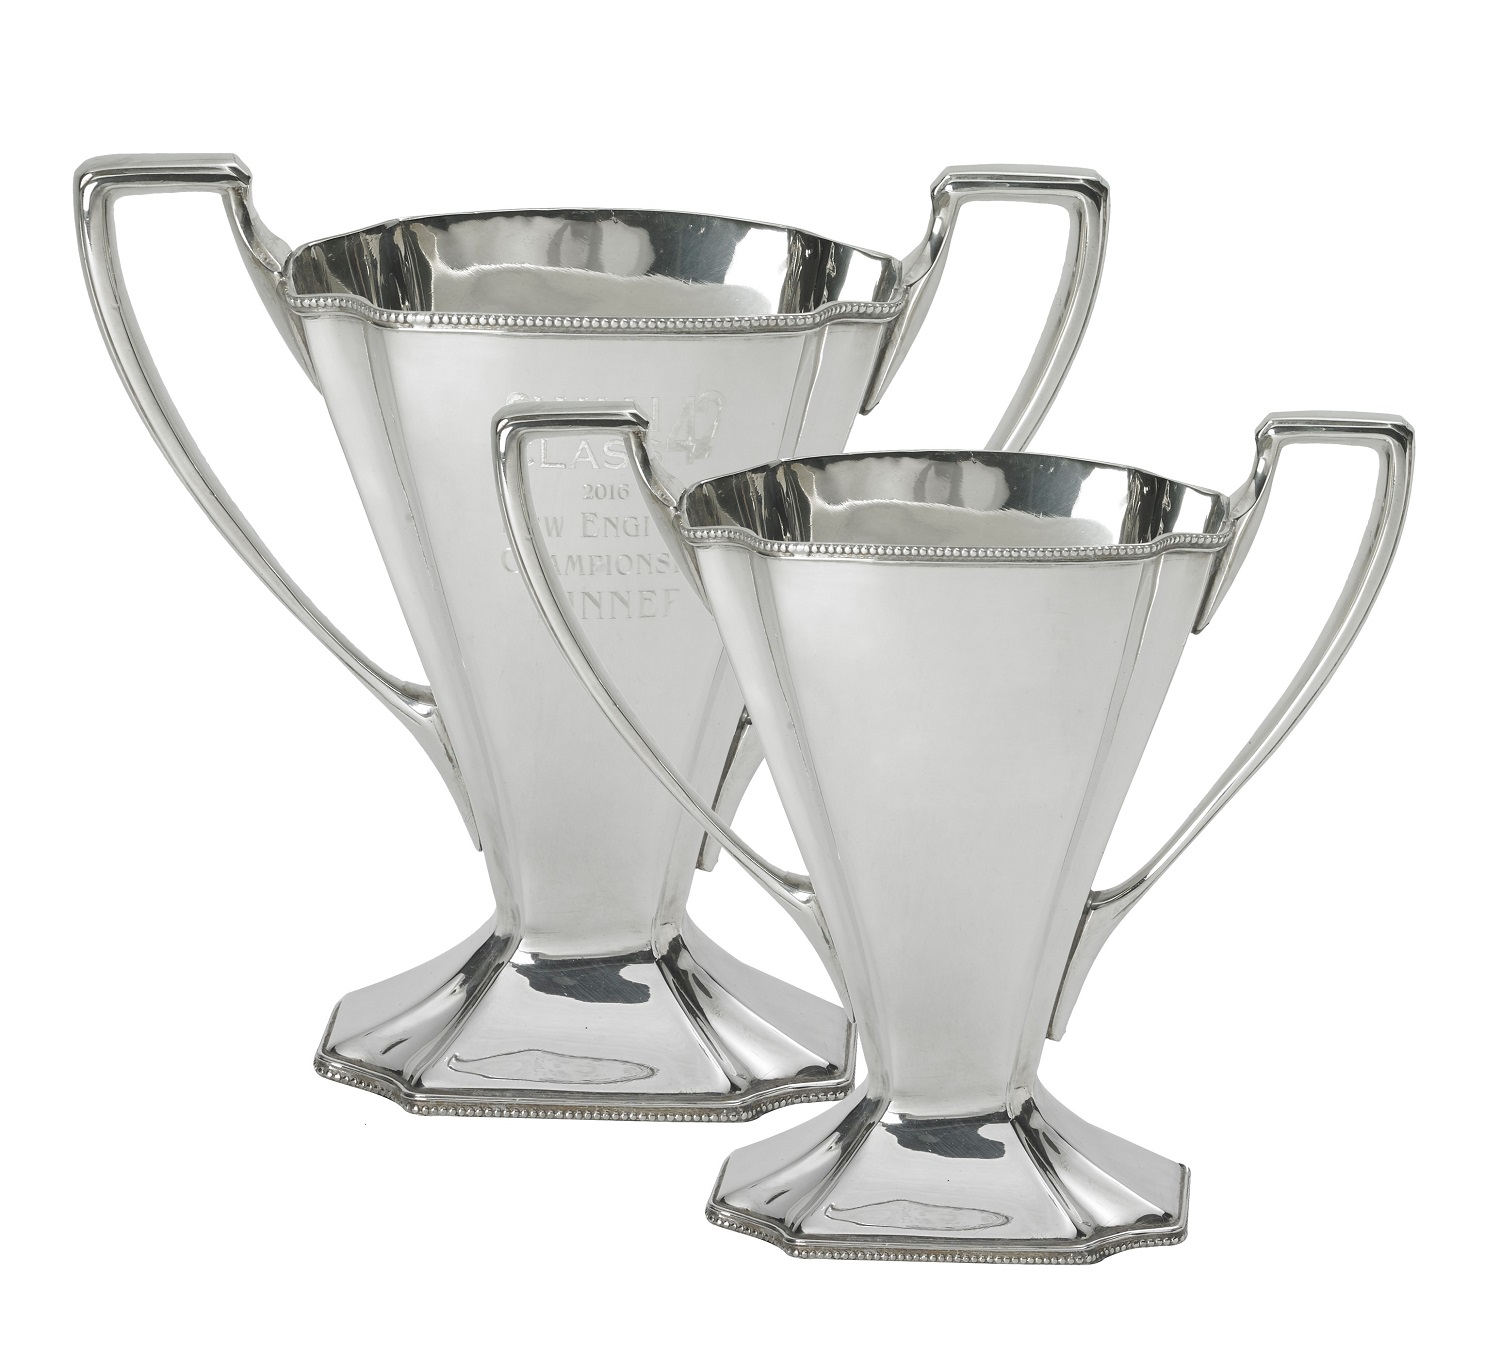 Talbot Trophy Cups